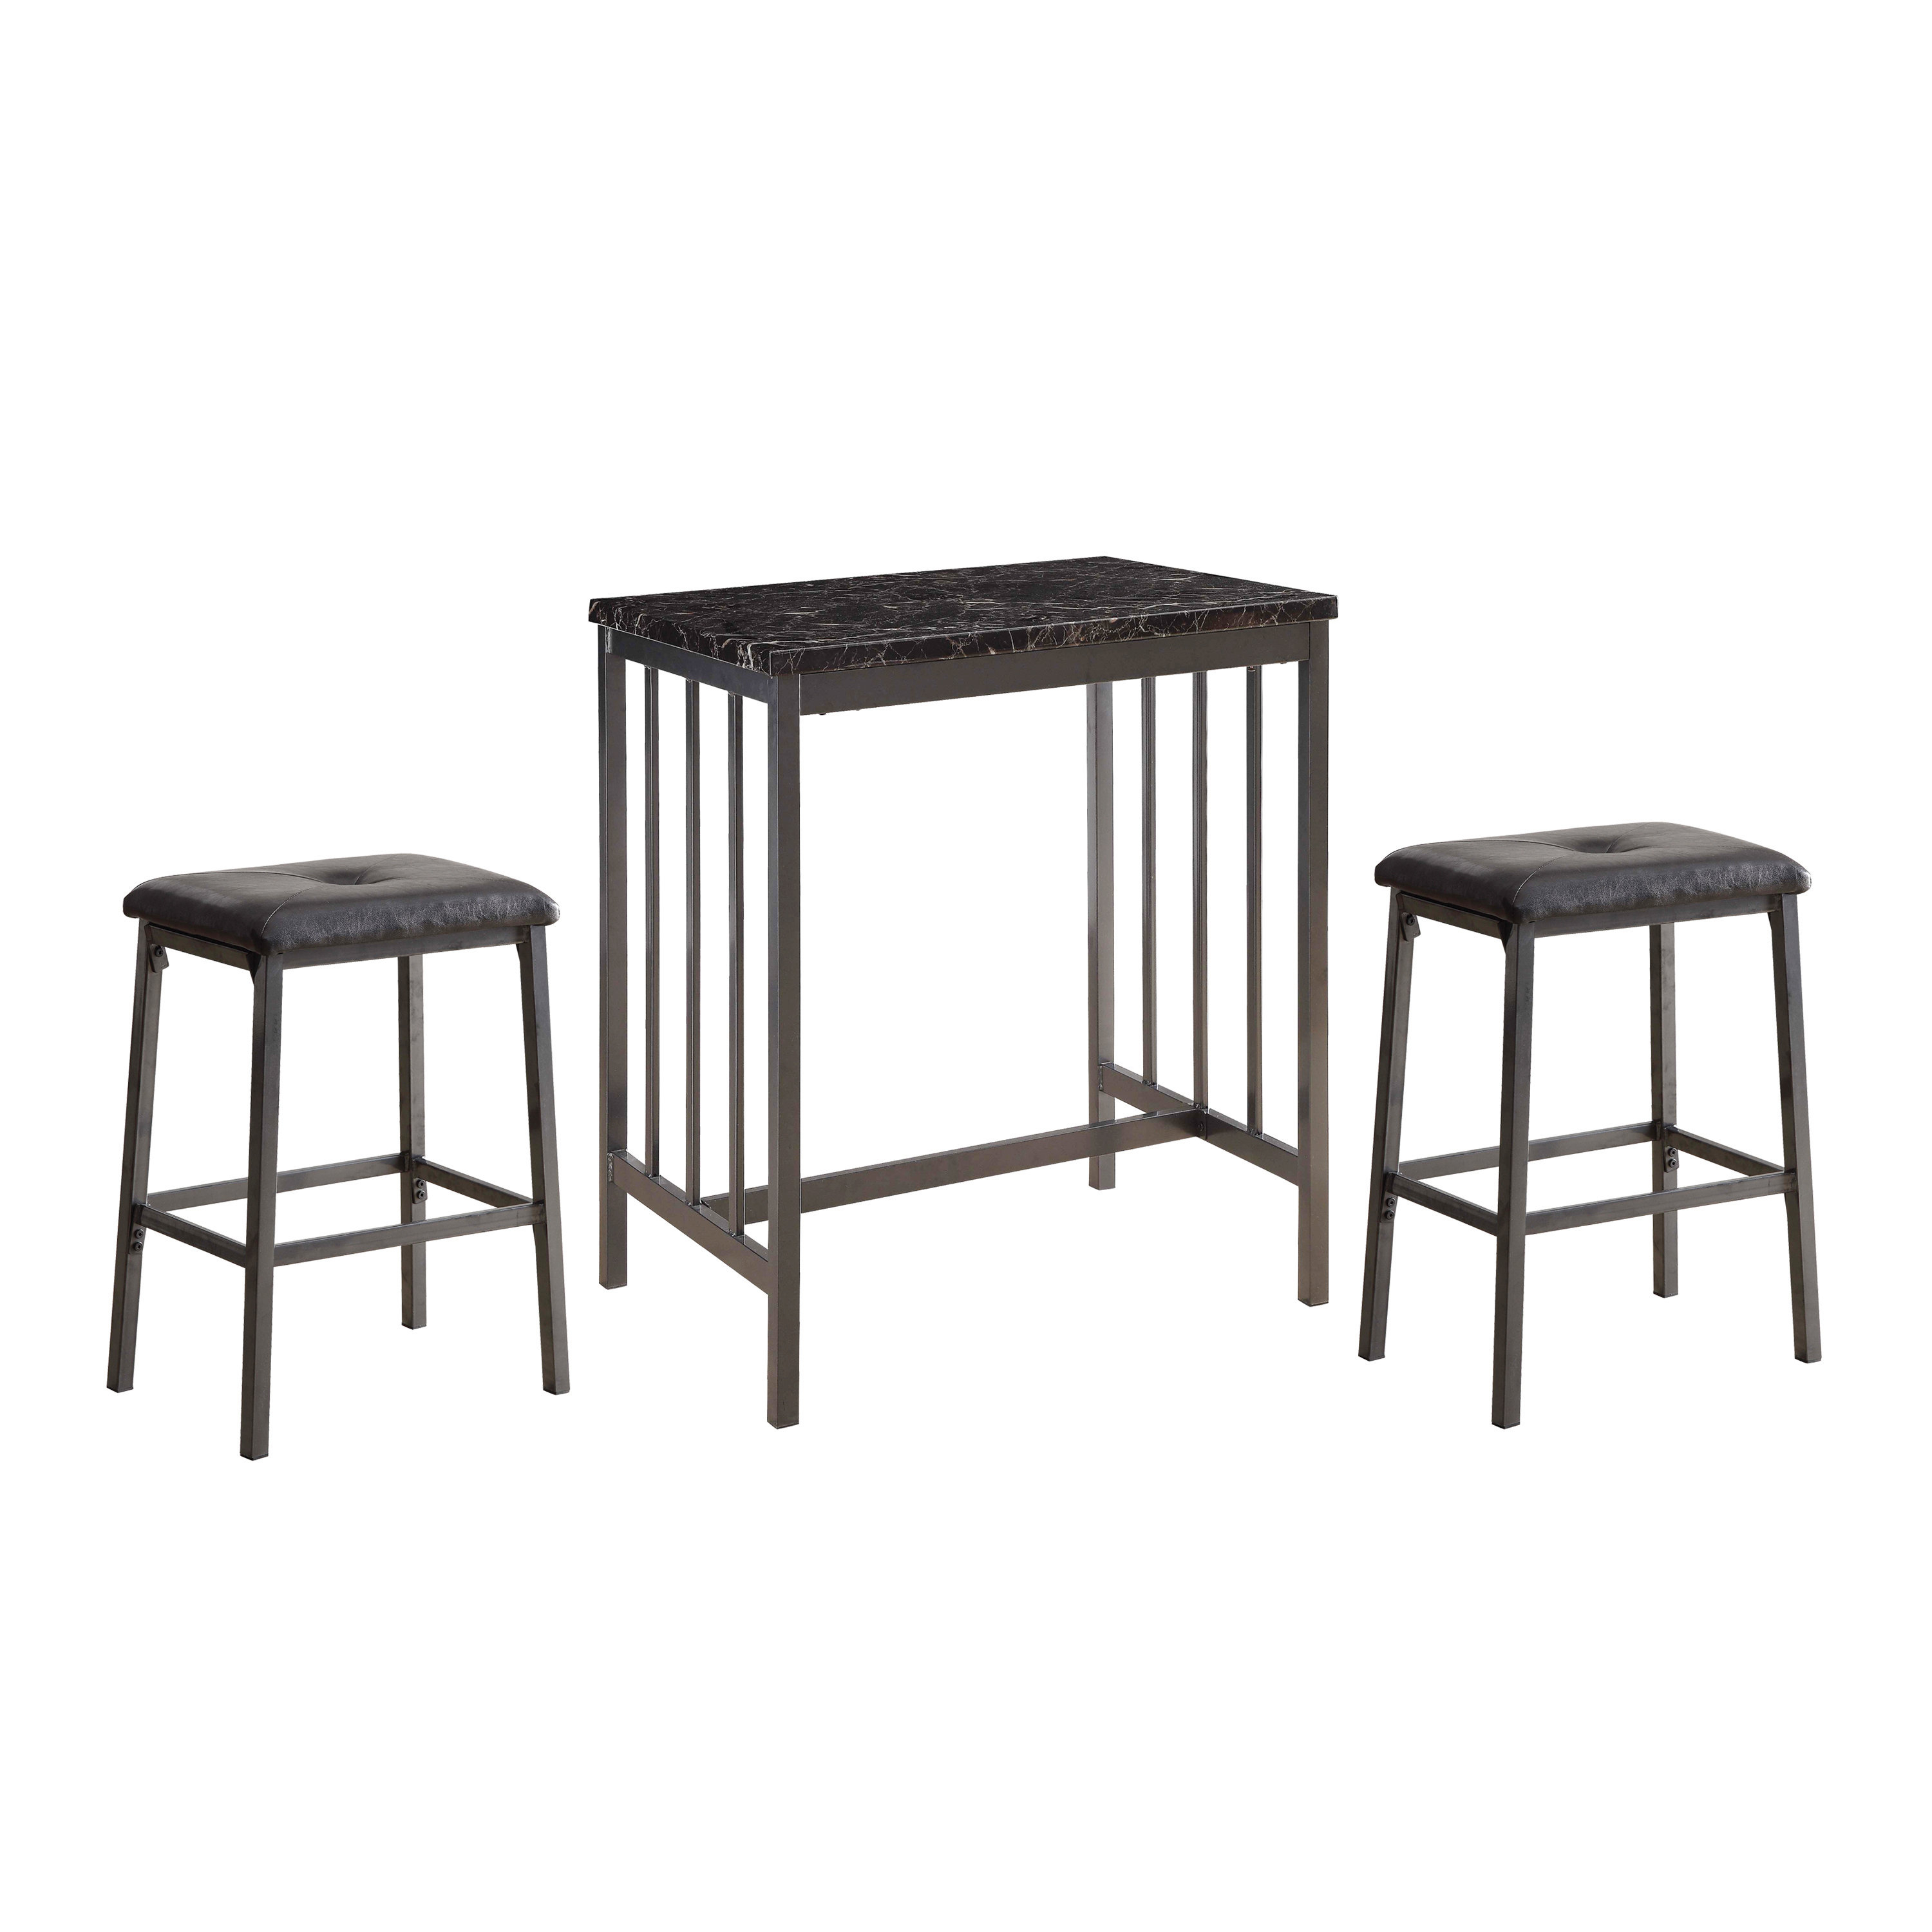 Wayfair Within Most Recent Nutter 3 Piece Dining Sets (View 8 of 25)